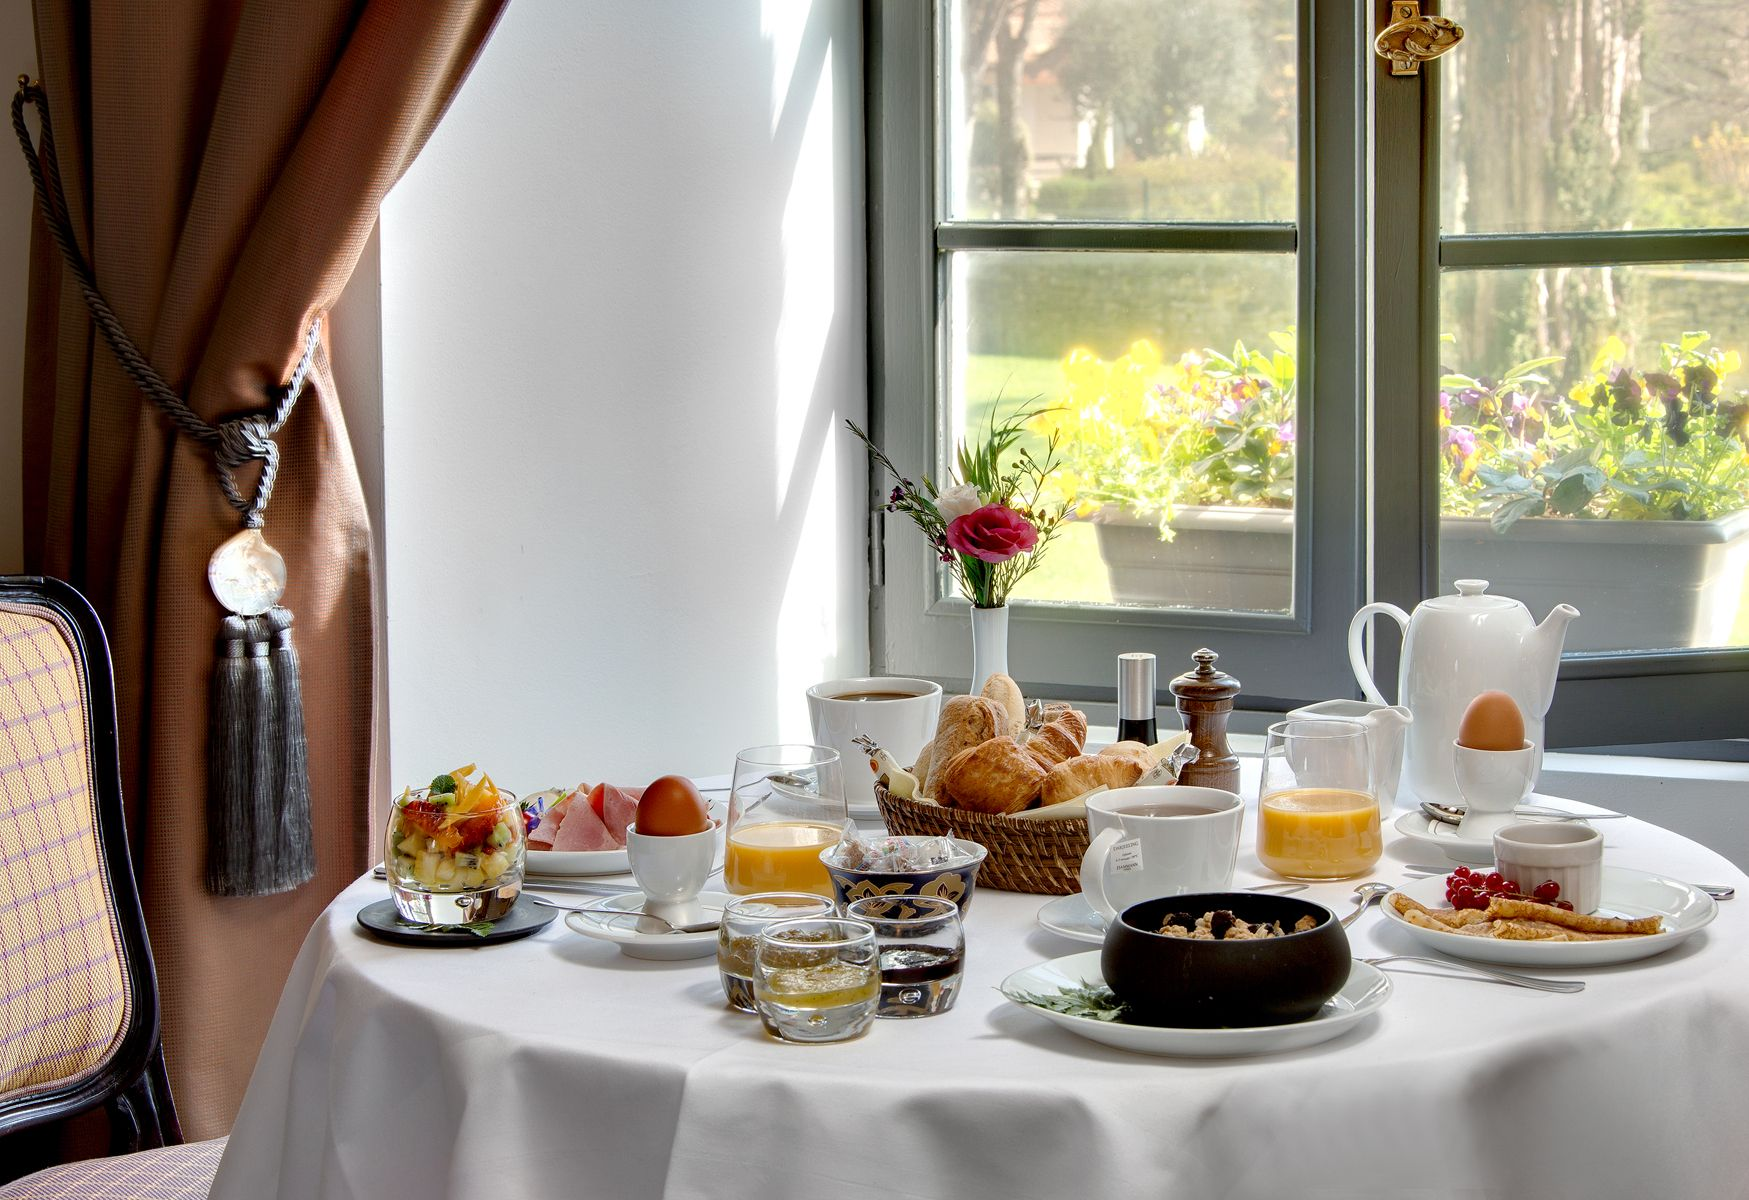 Hôtel Saint Martin **** | luxury hotel france | Breakfast